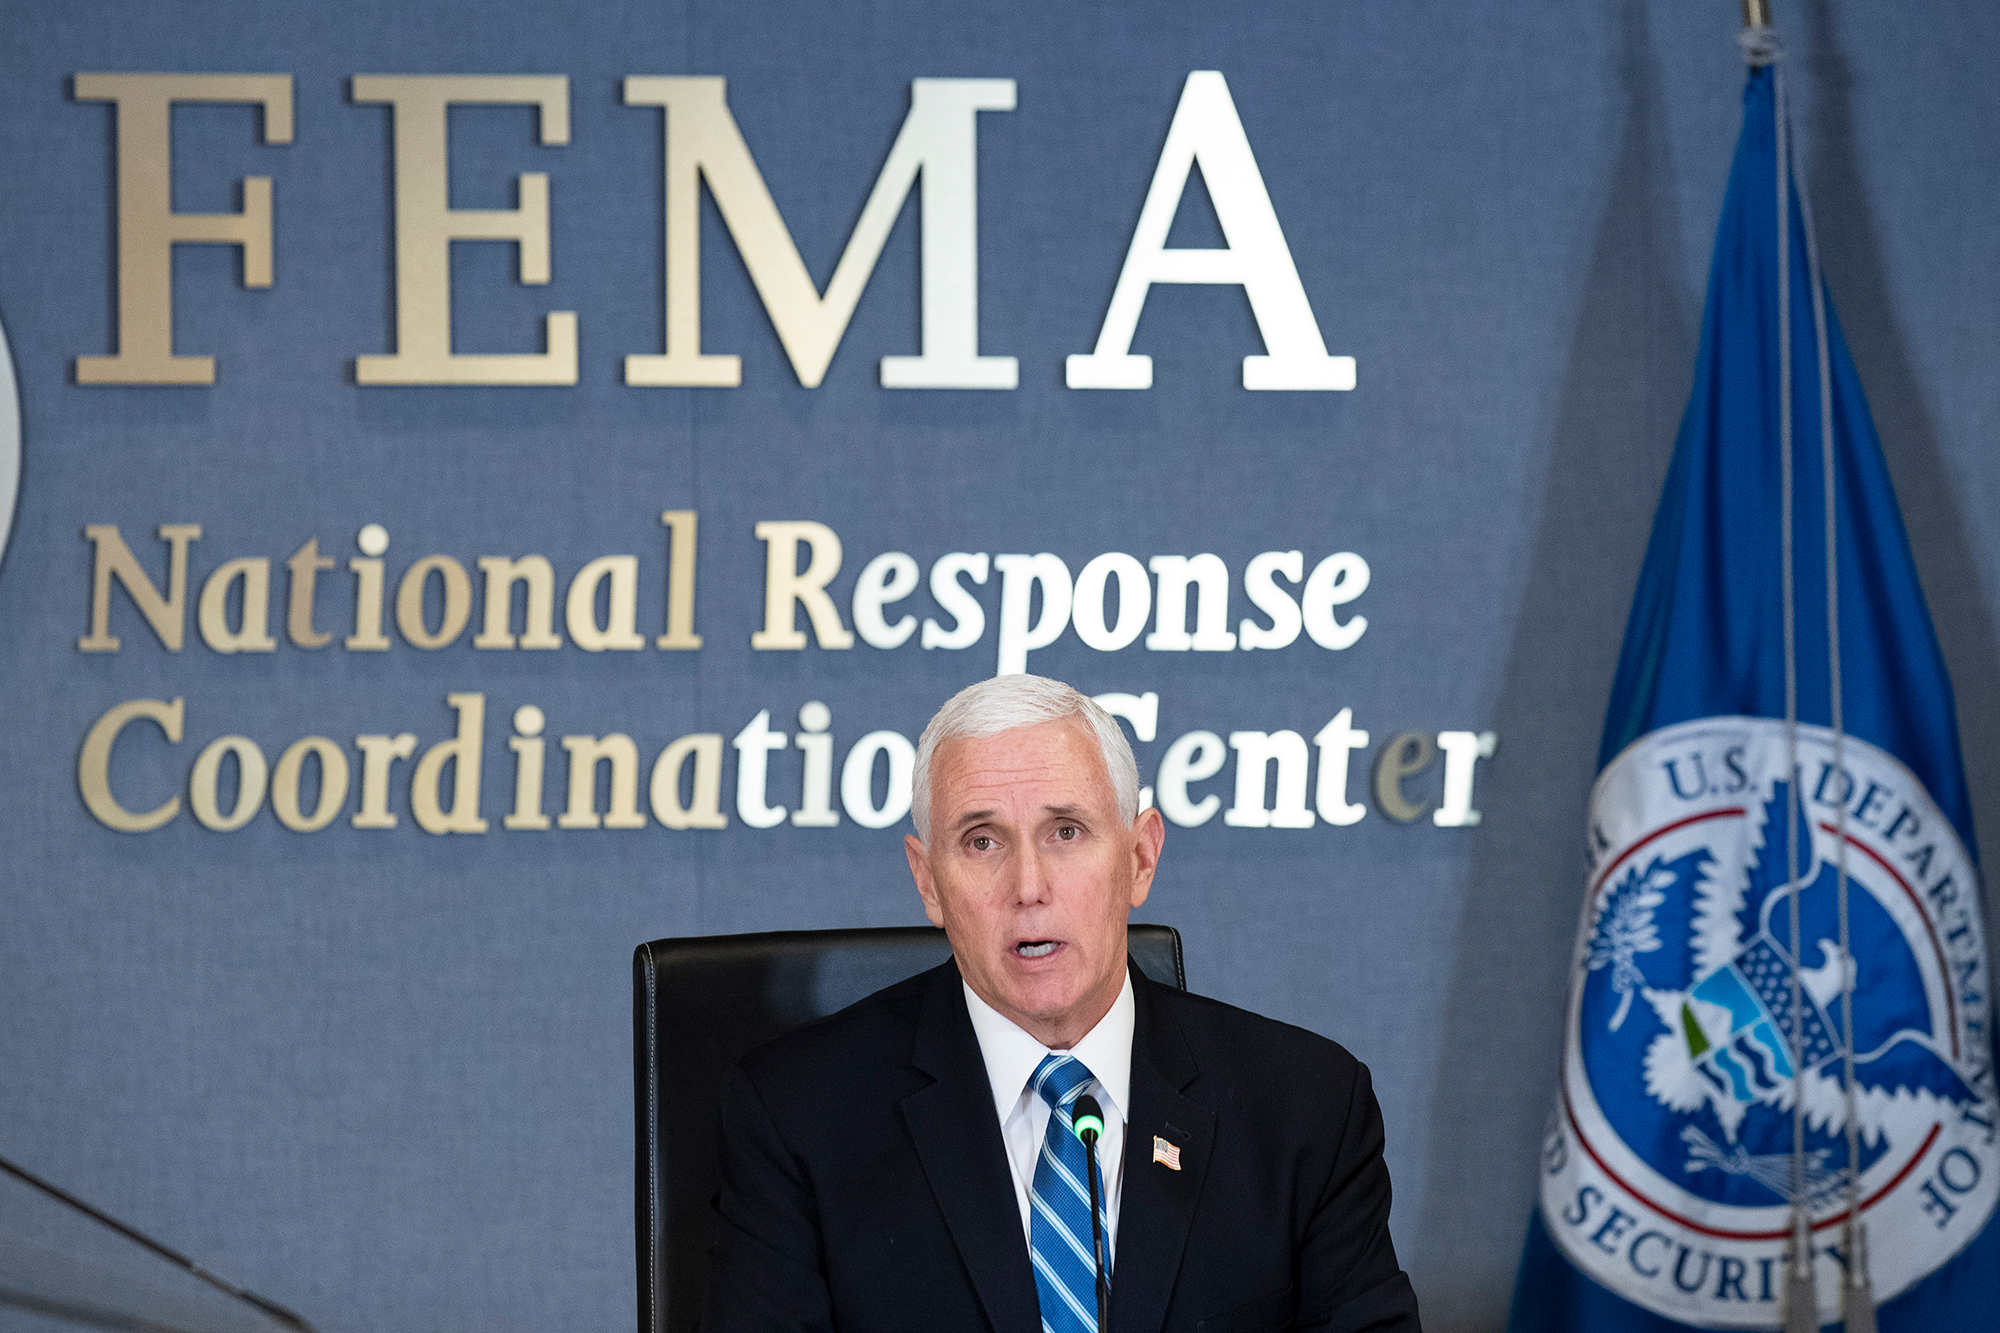 Vice President Mike Pence speaks as he leads a video teleconference with governors about the coronavirus during a trip to FEMA on Monday, March 23, in Washington.